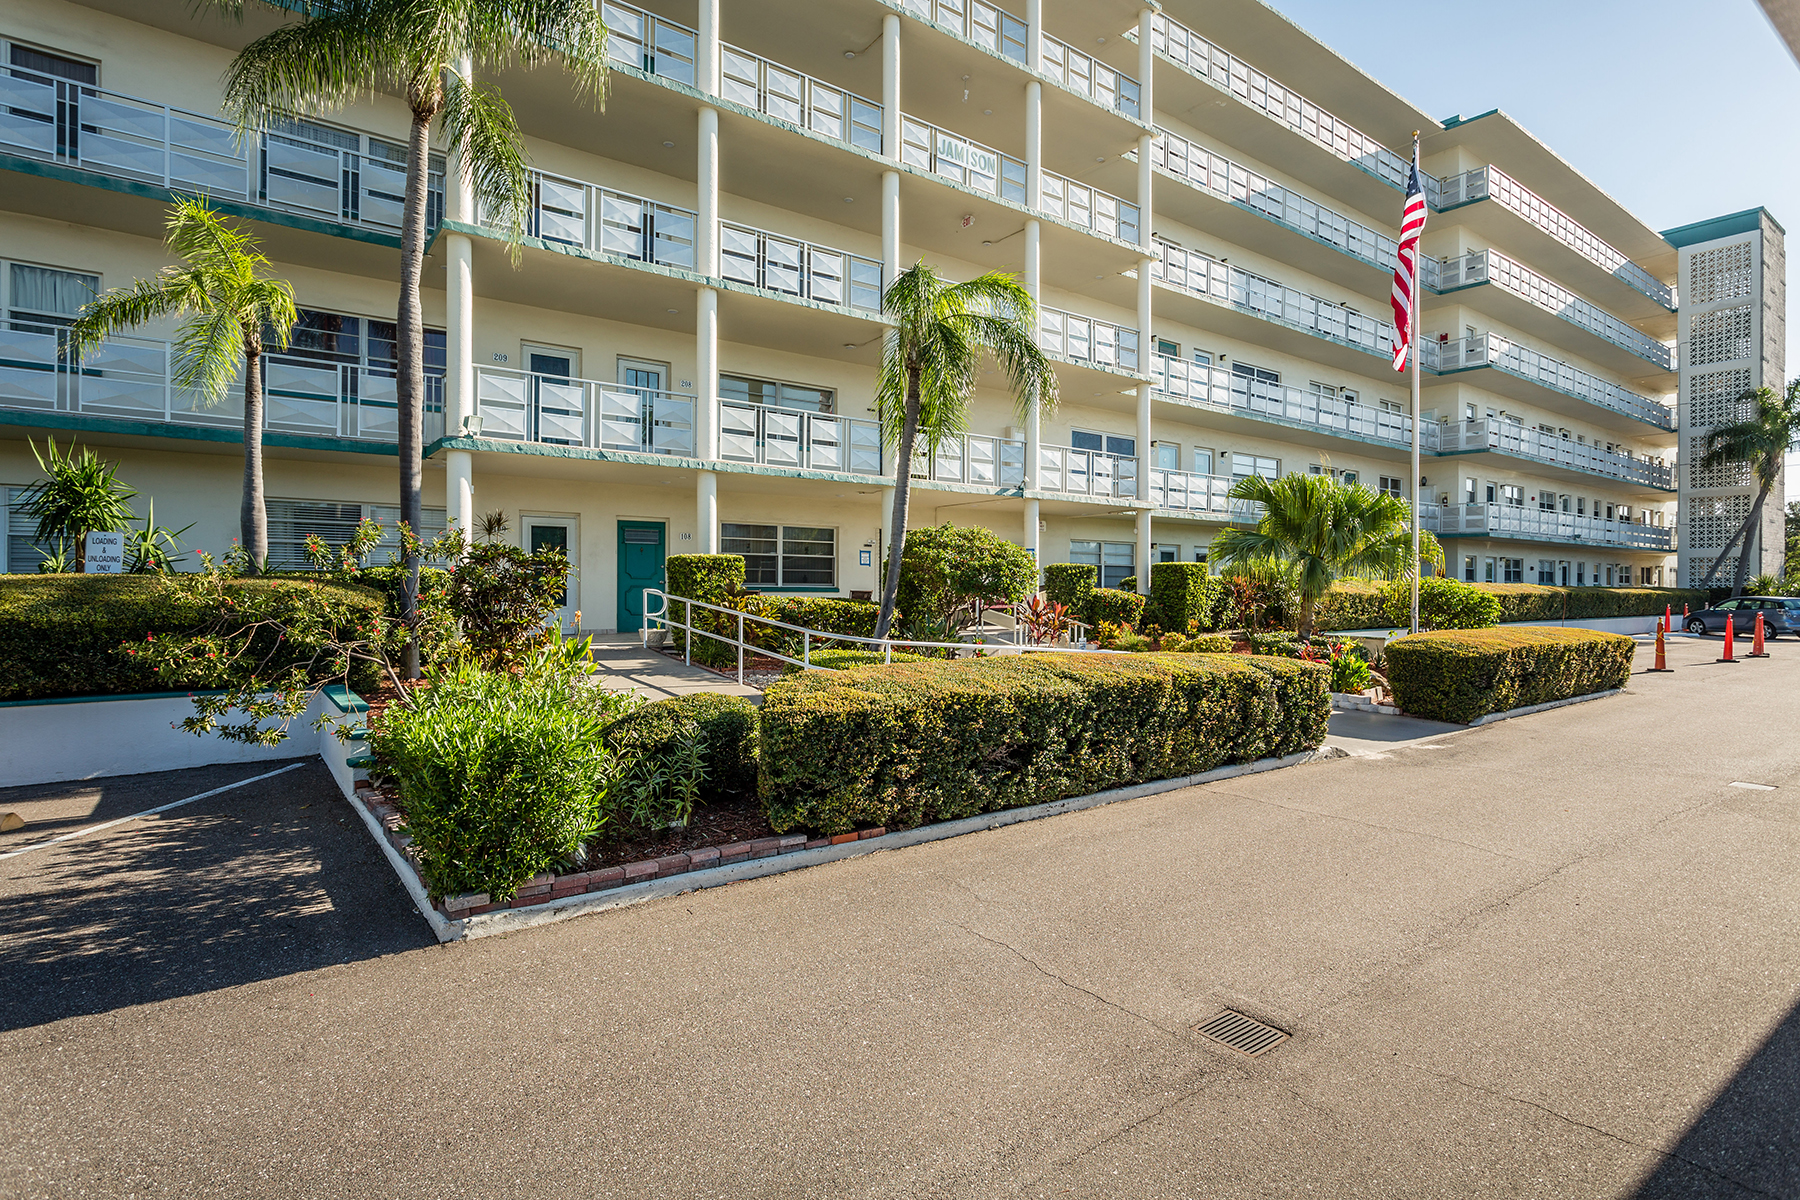 Condominium for Sale at GULFPORT 2960 59th St S 401 Gulfport, Florida, 33707 United States